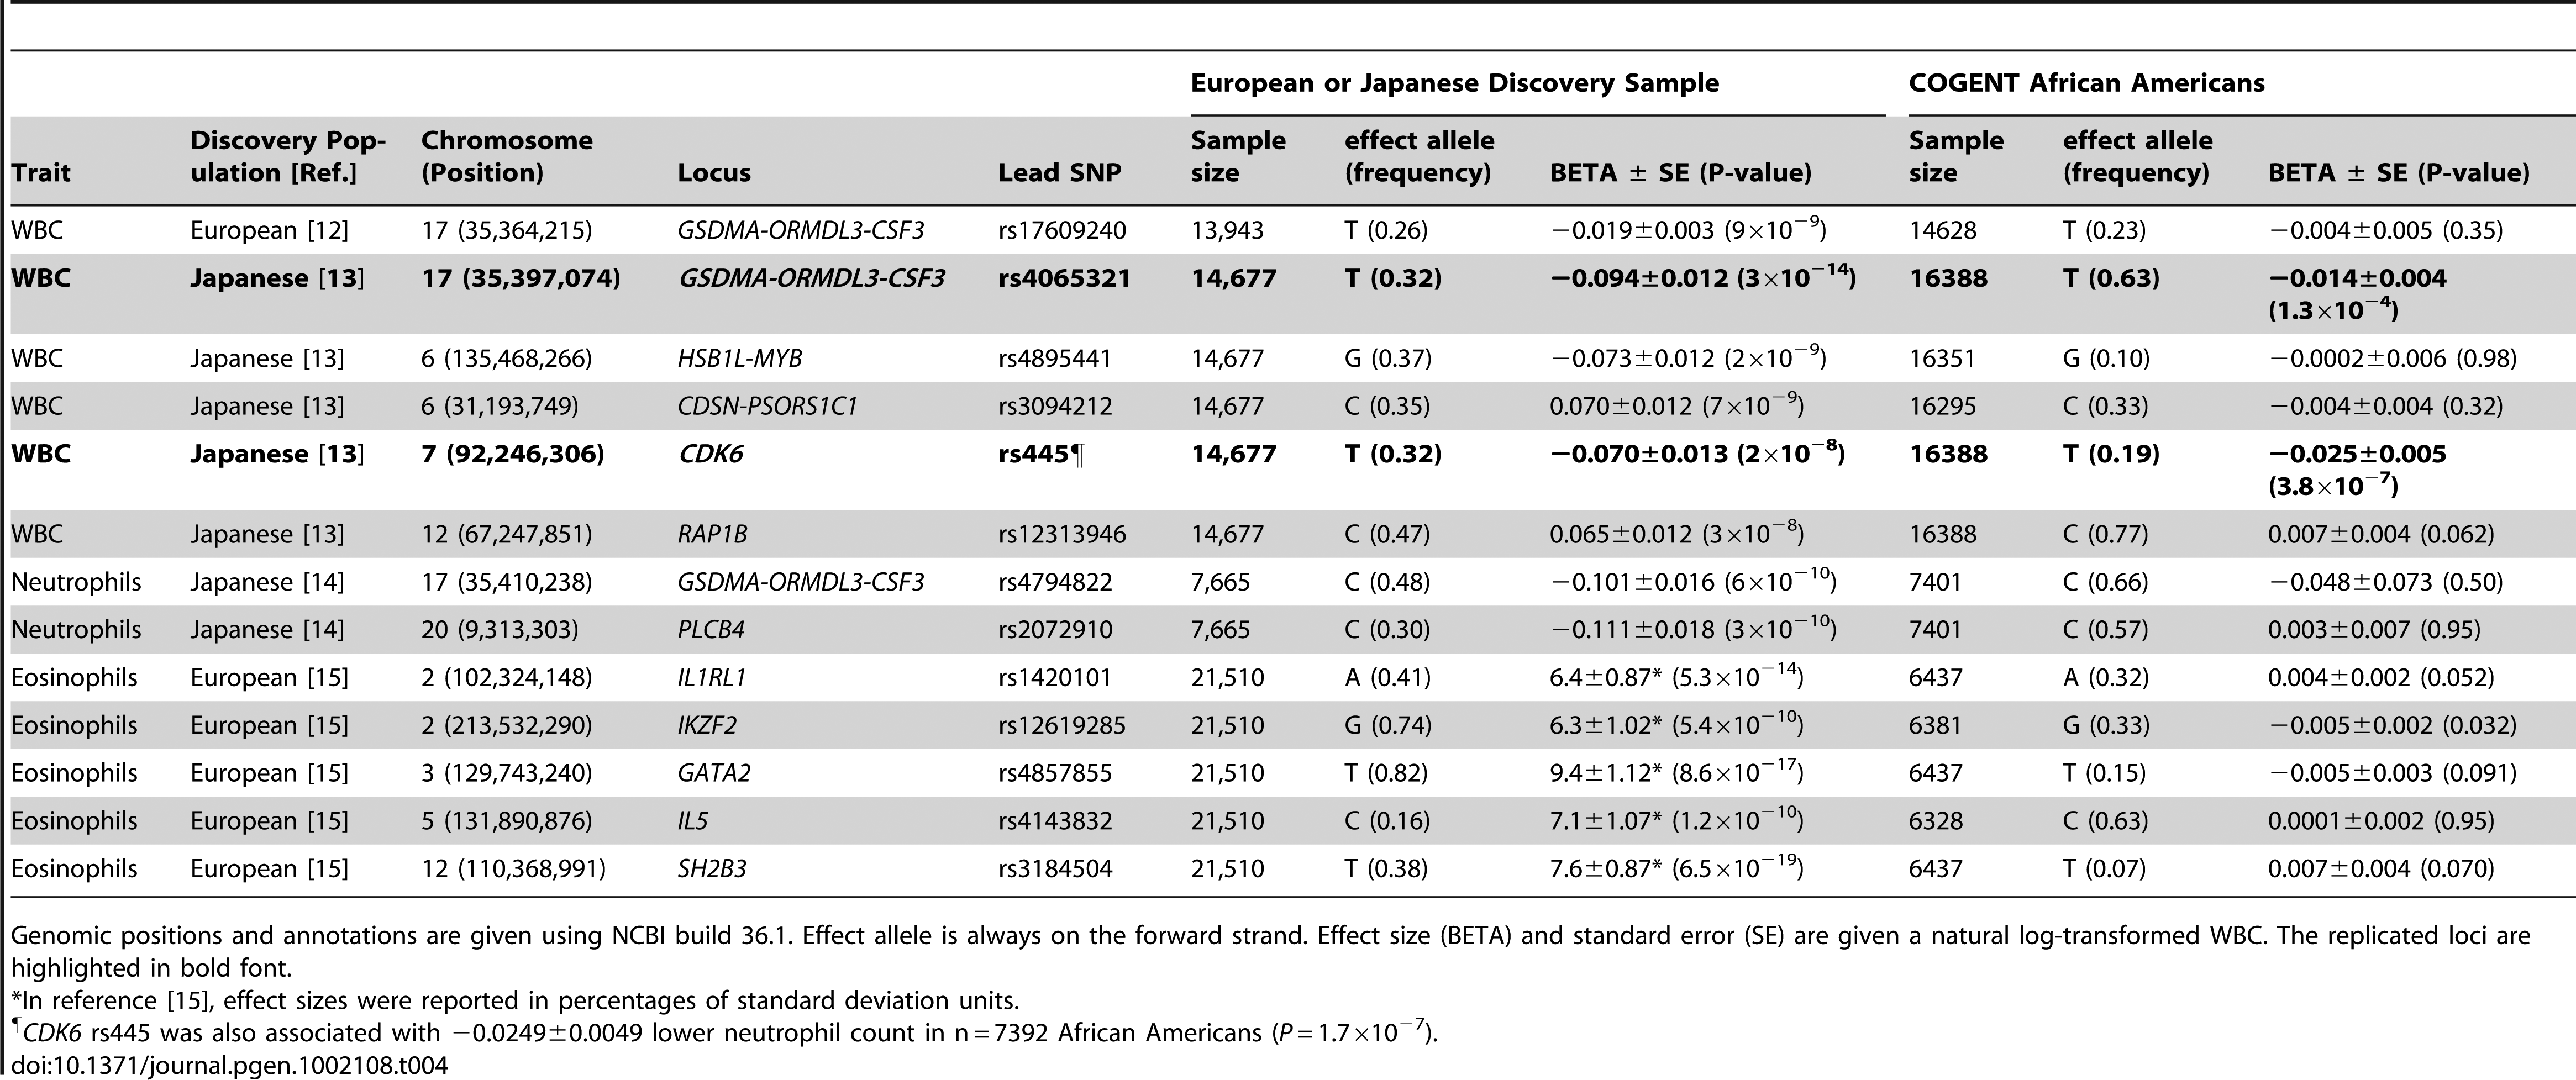 Assessment in African-Americans of loci previously associated with leukocyte traits in Caucasians and/or Japanese.